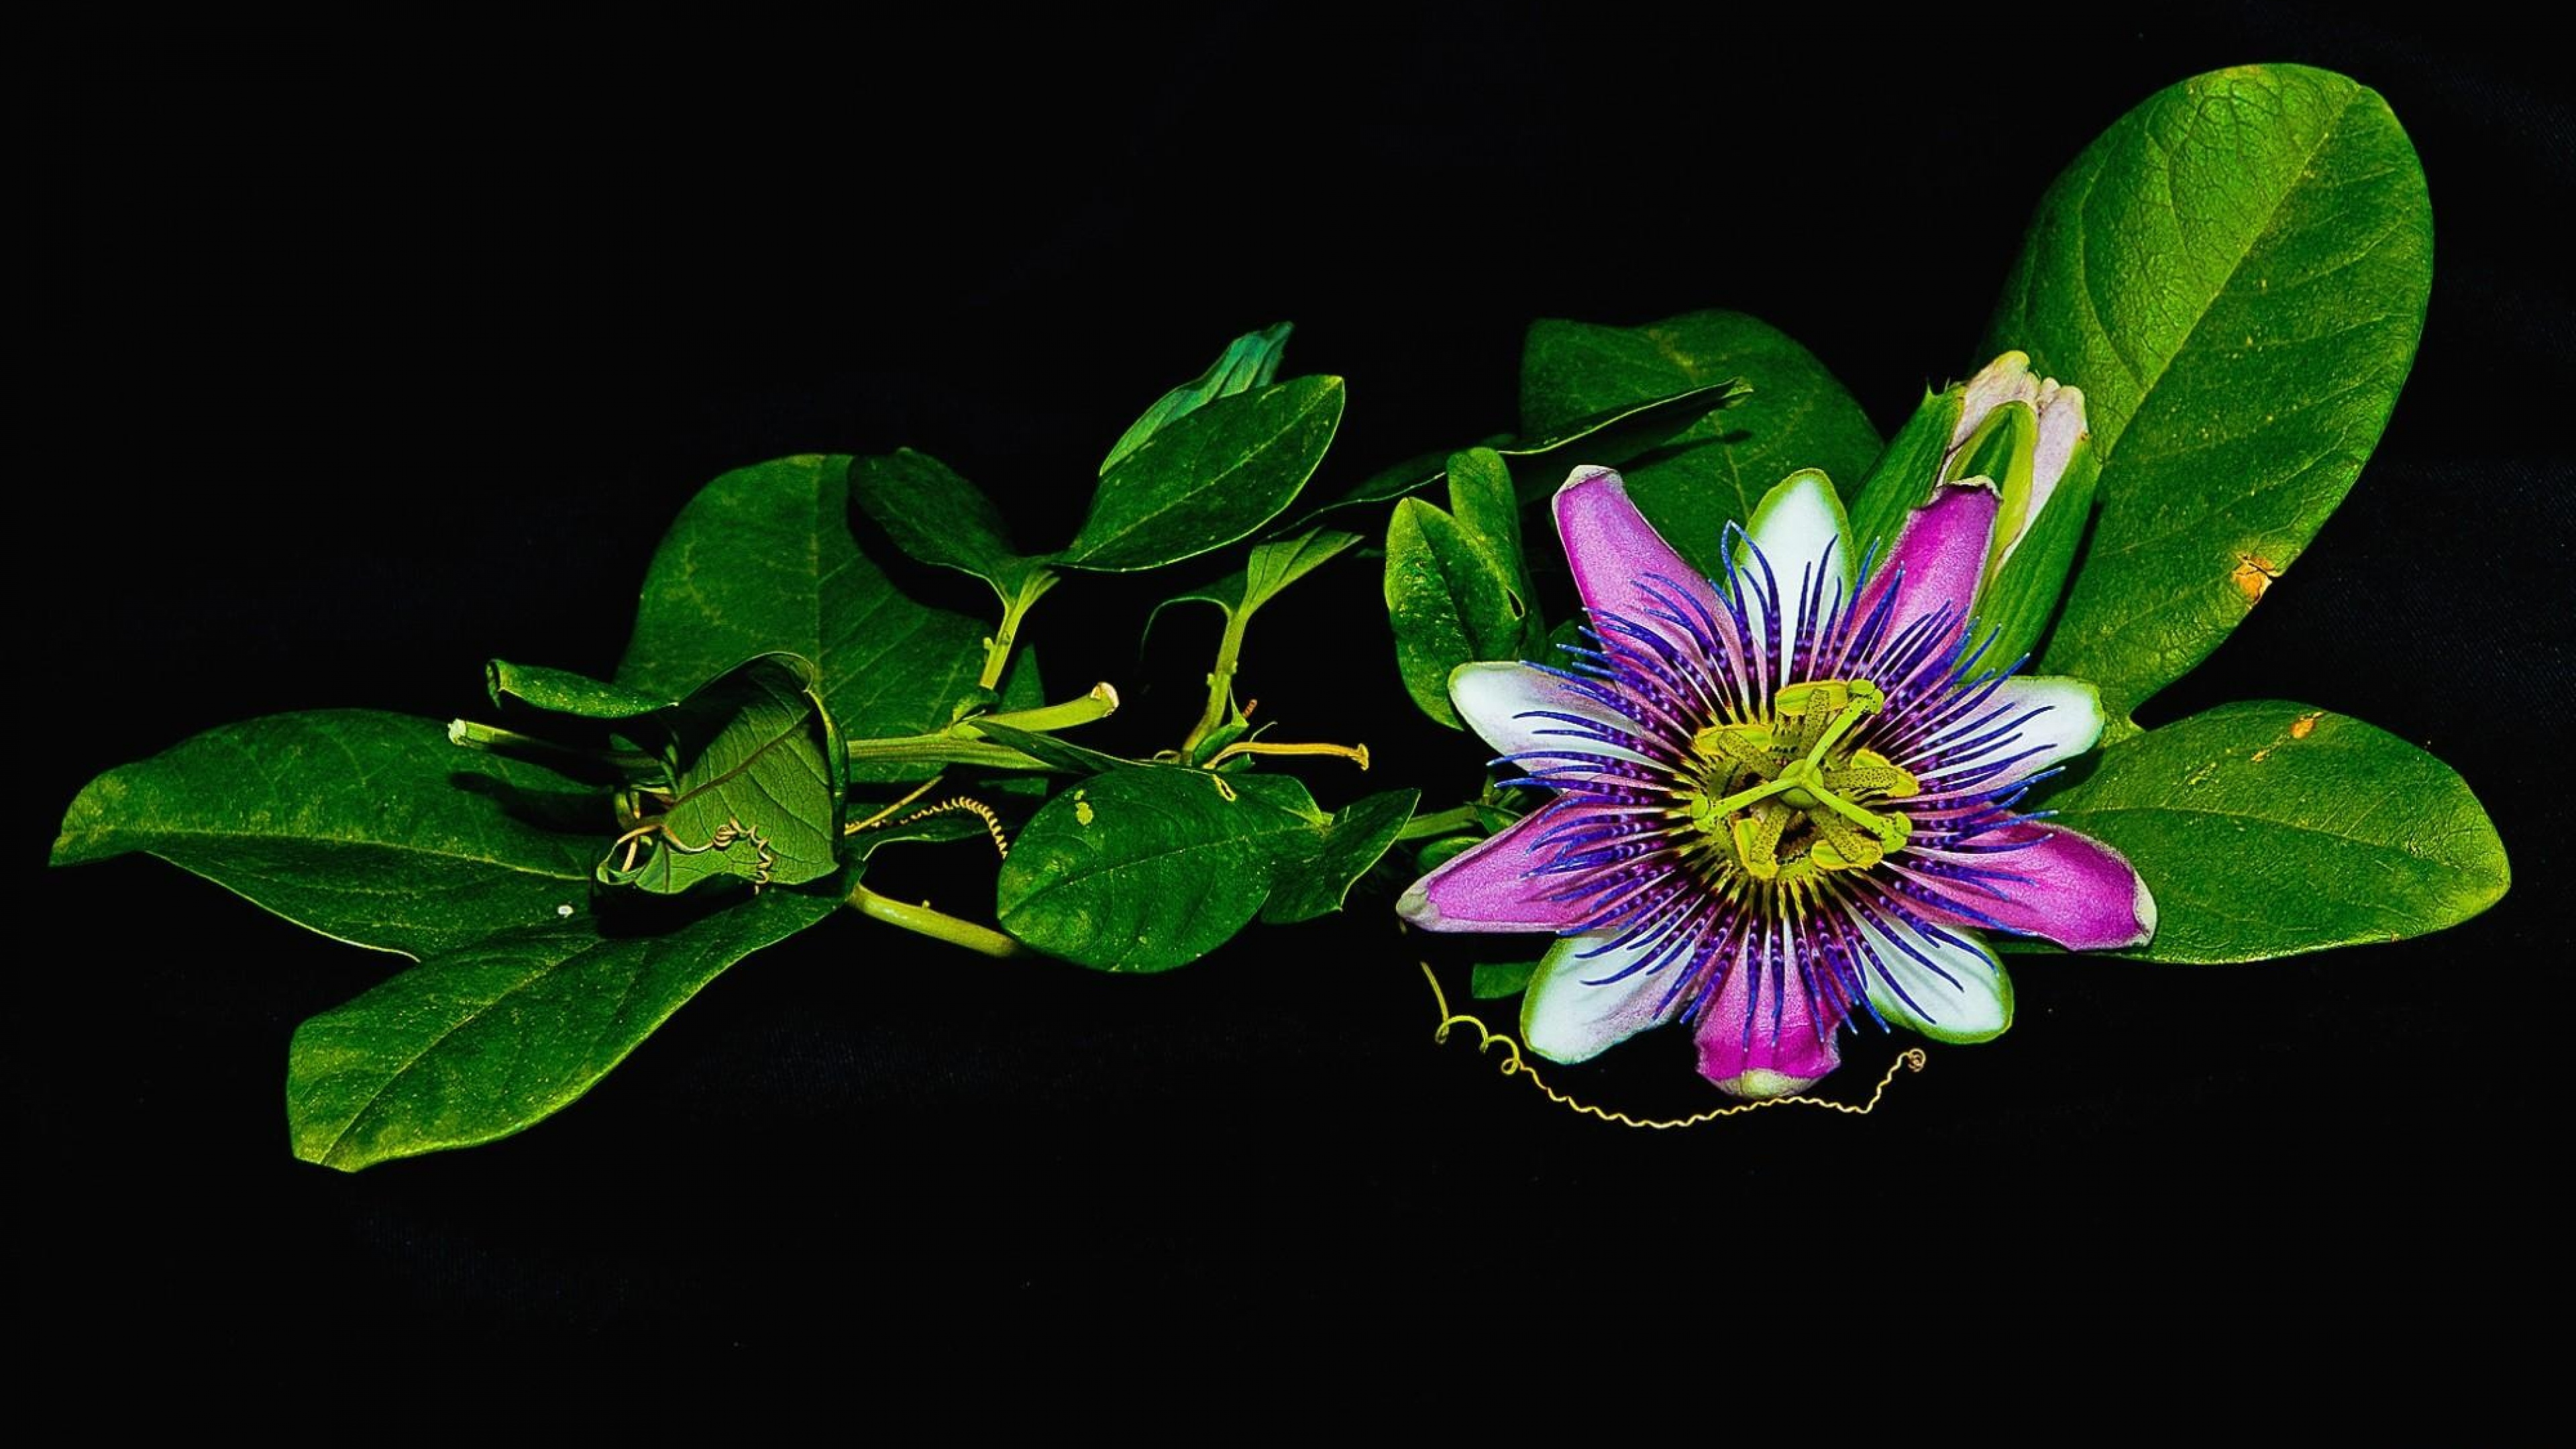 3840x2160 - Passion Flower Wallpapers 11